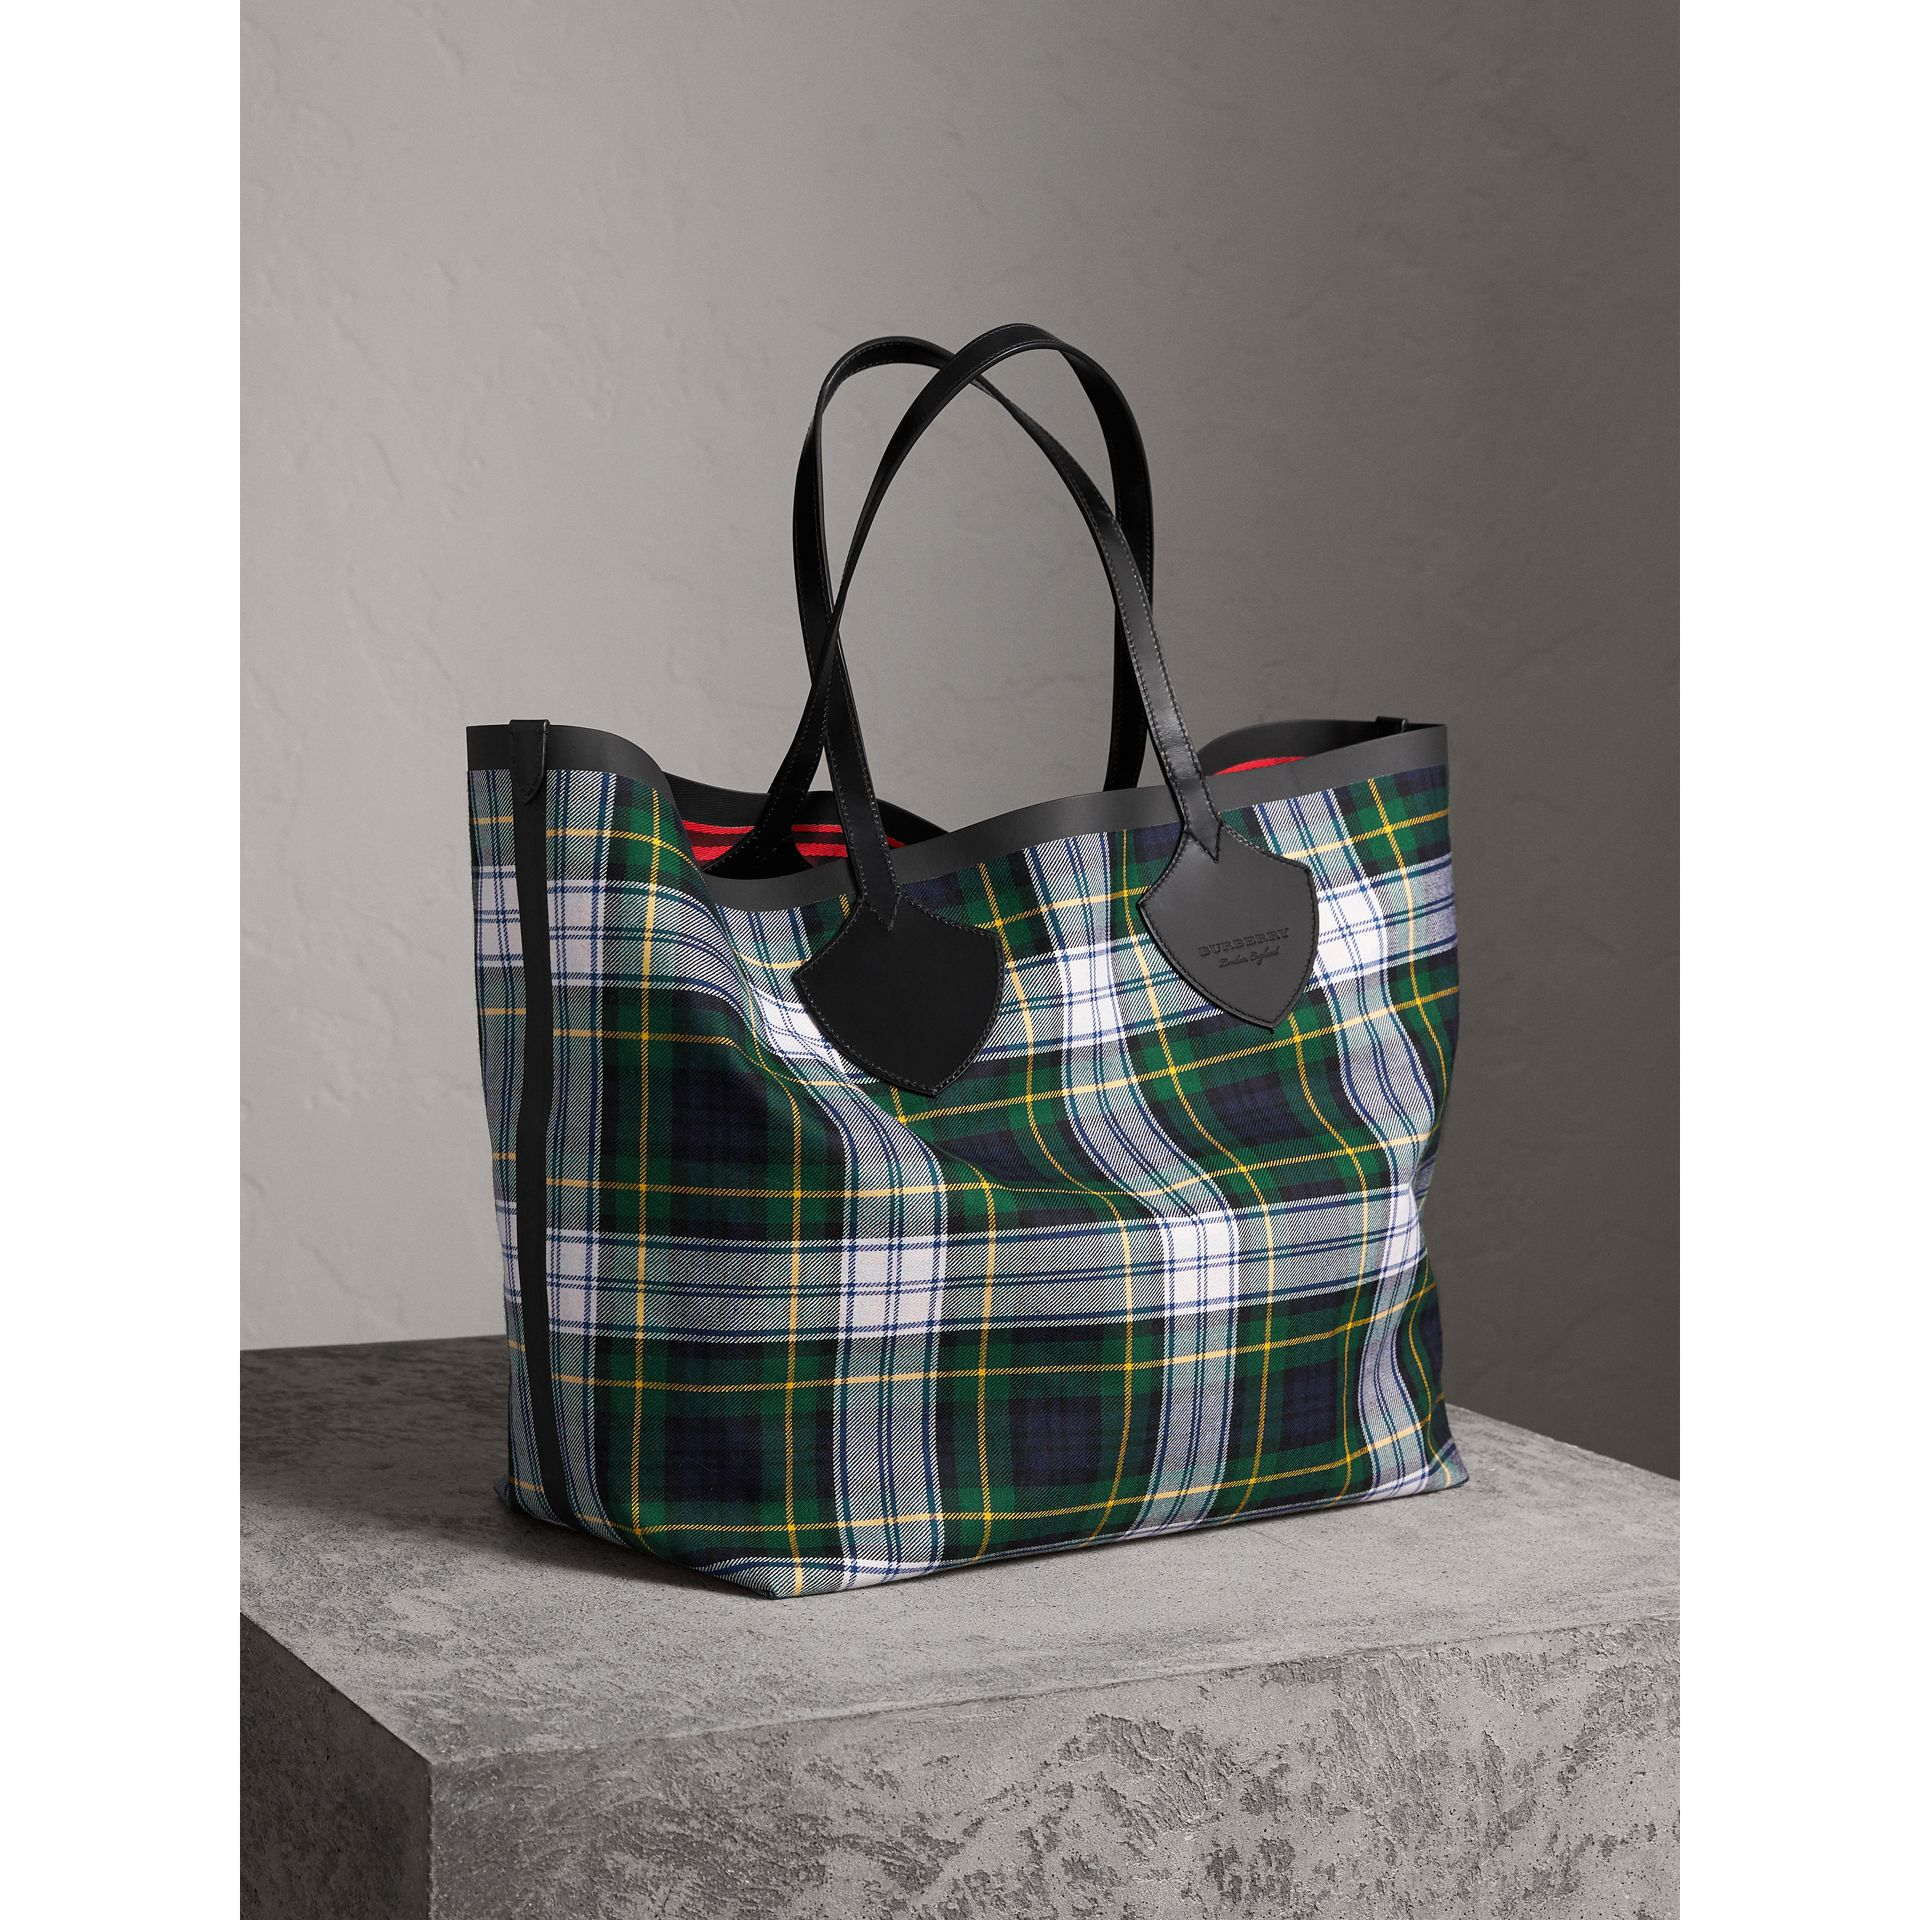 Sac tote The Giant réversible en coton tartan (Bleu Encre/rouge Militaire) | Burberry - photo de la galerie 6